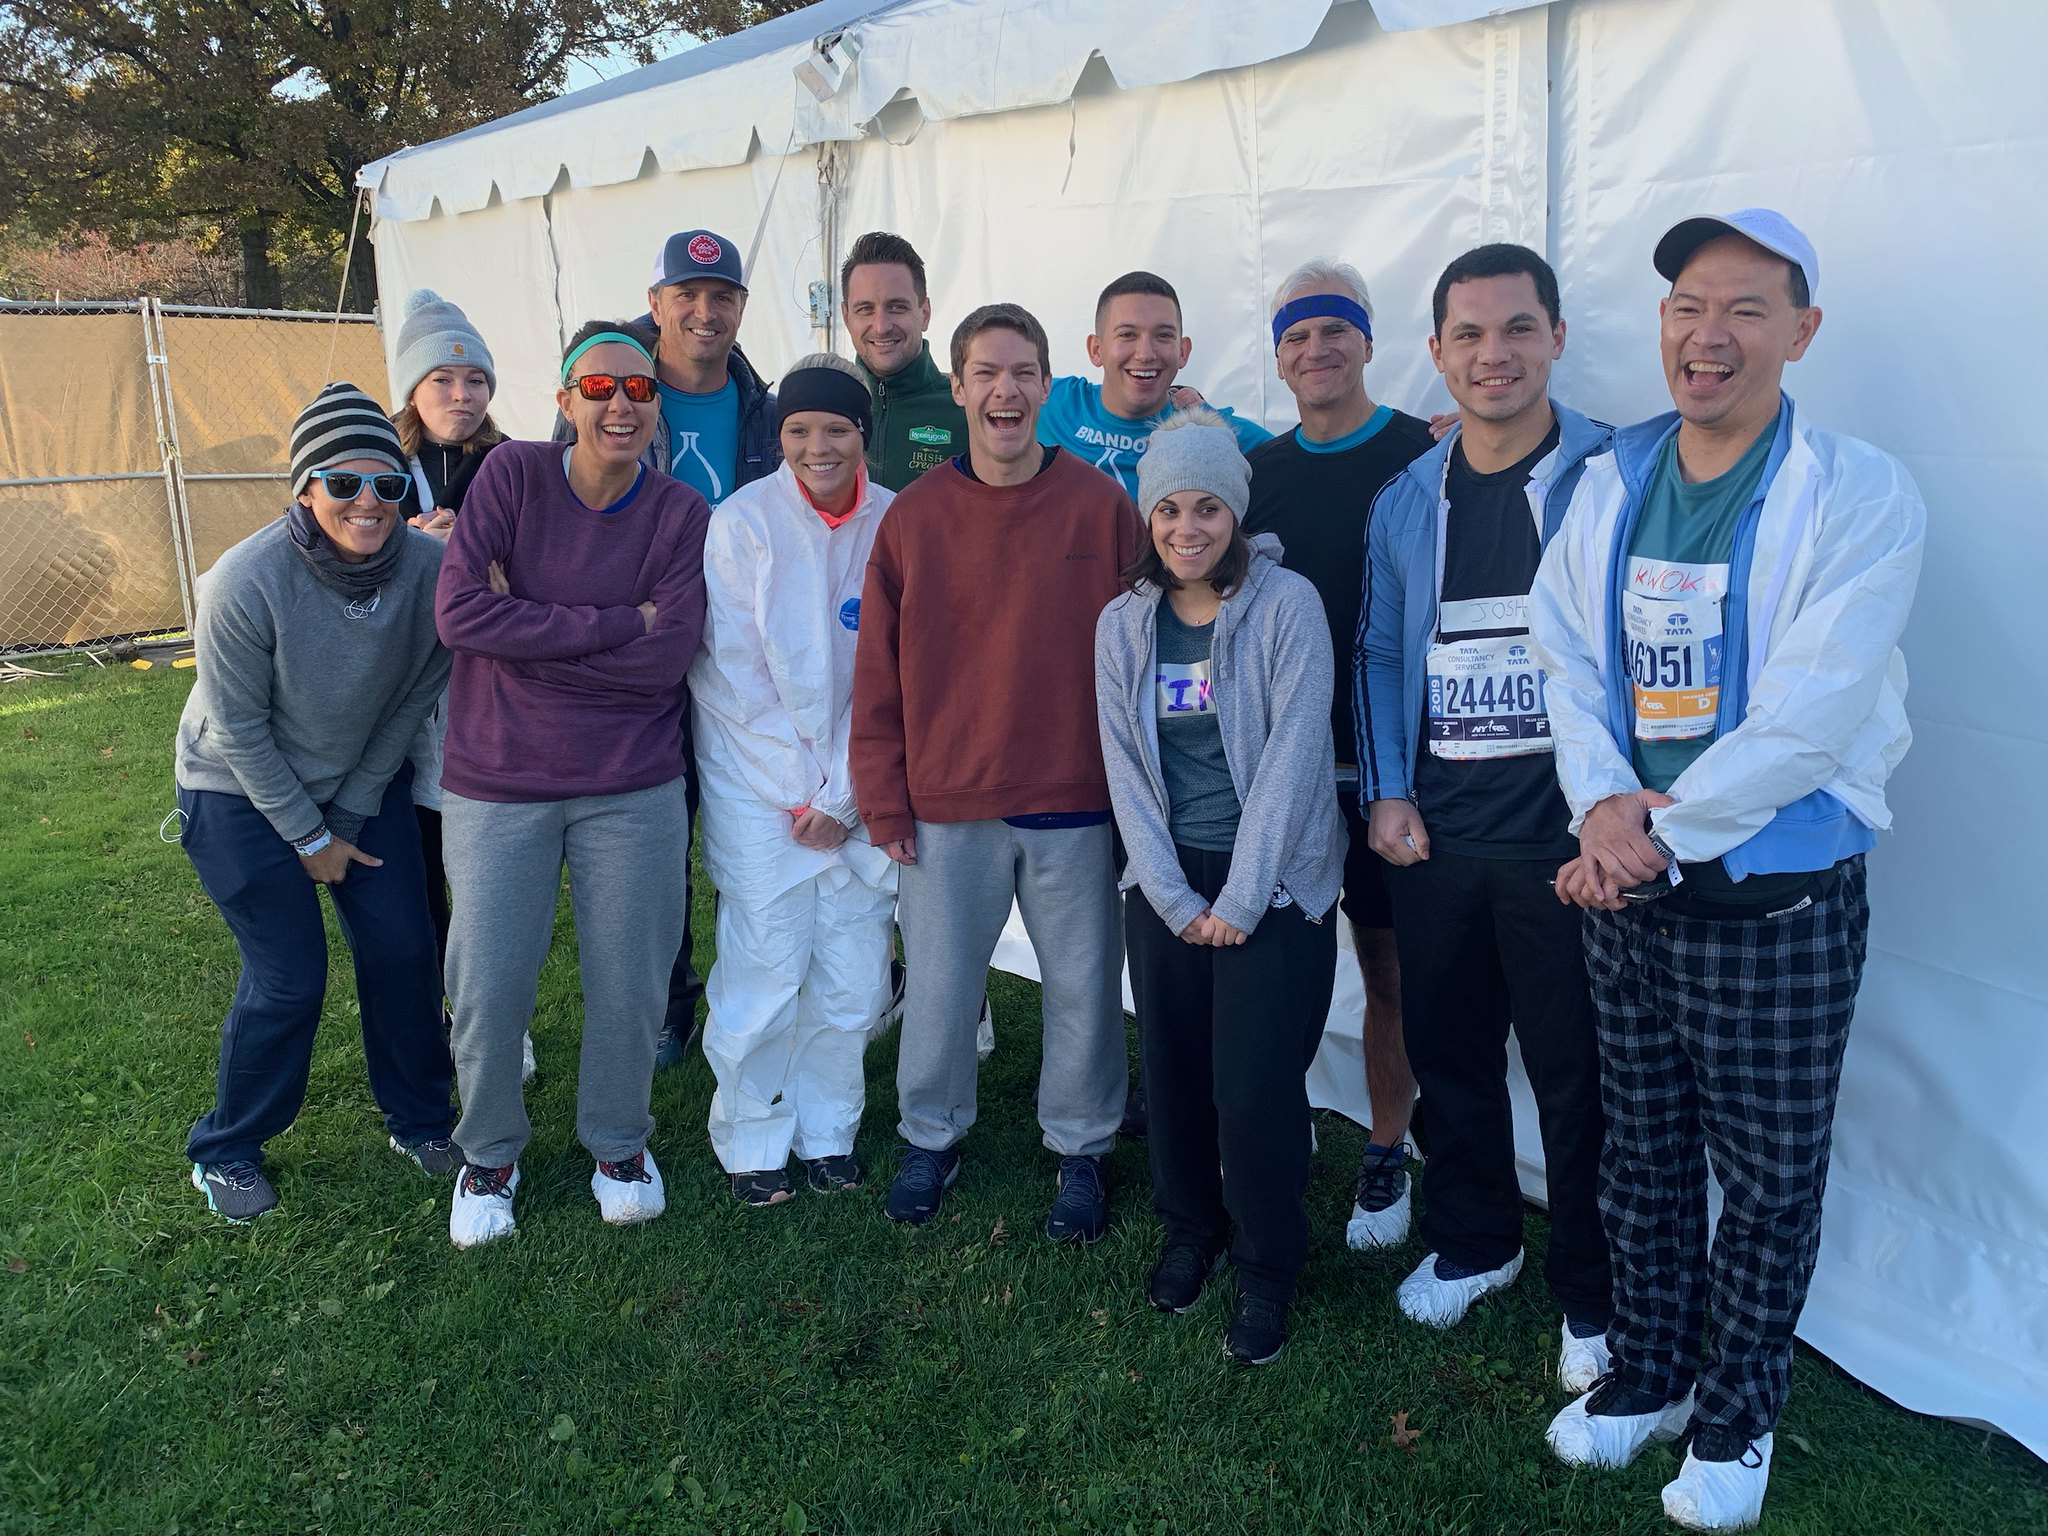 Team LCRF runs TCS NYC Marathon for lung cancer research